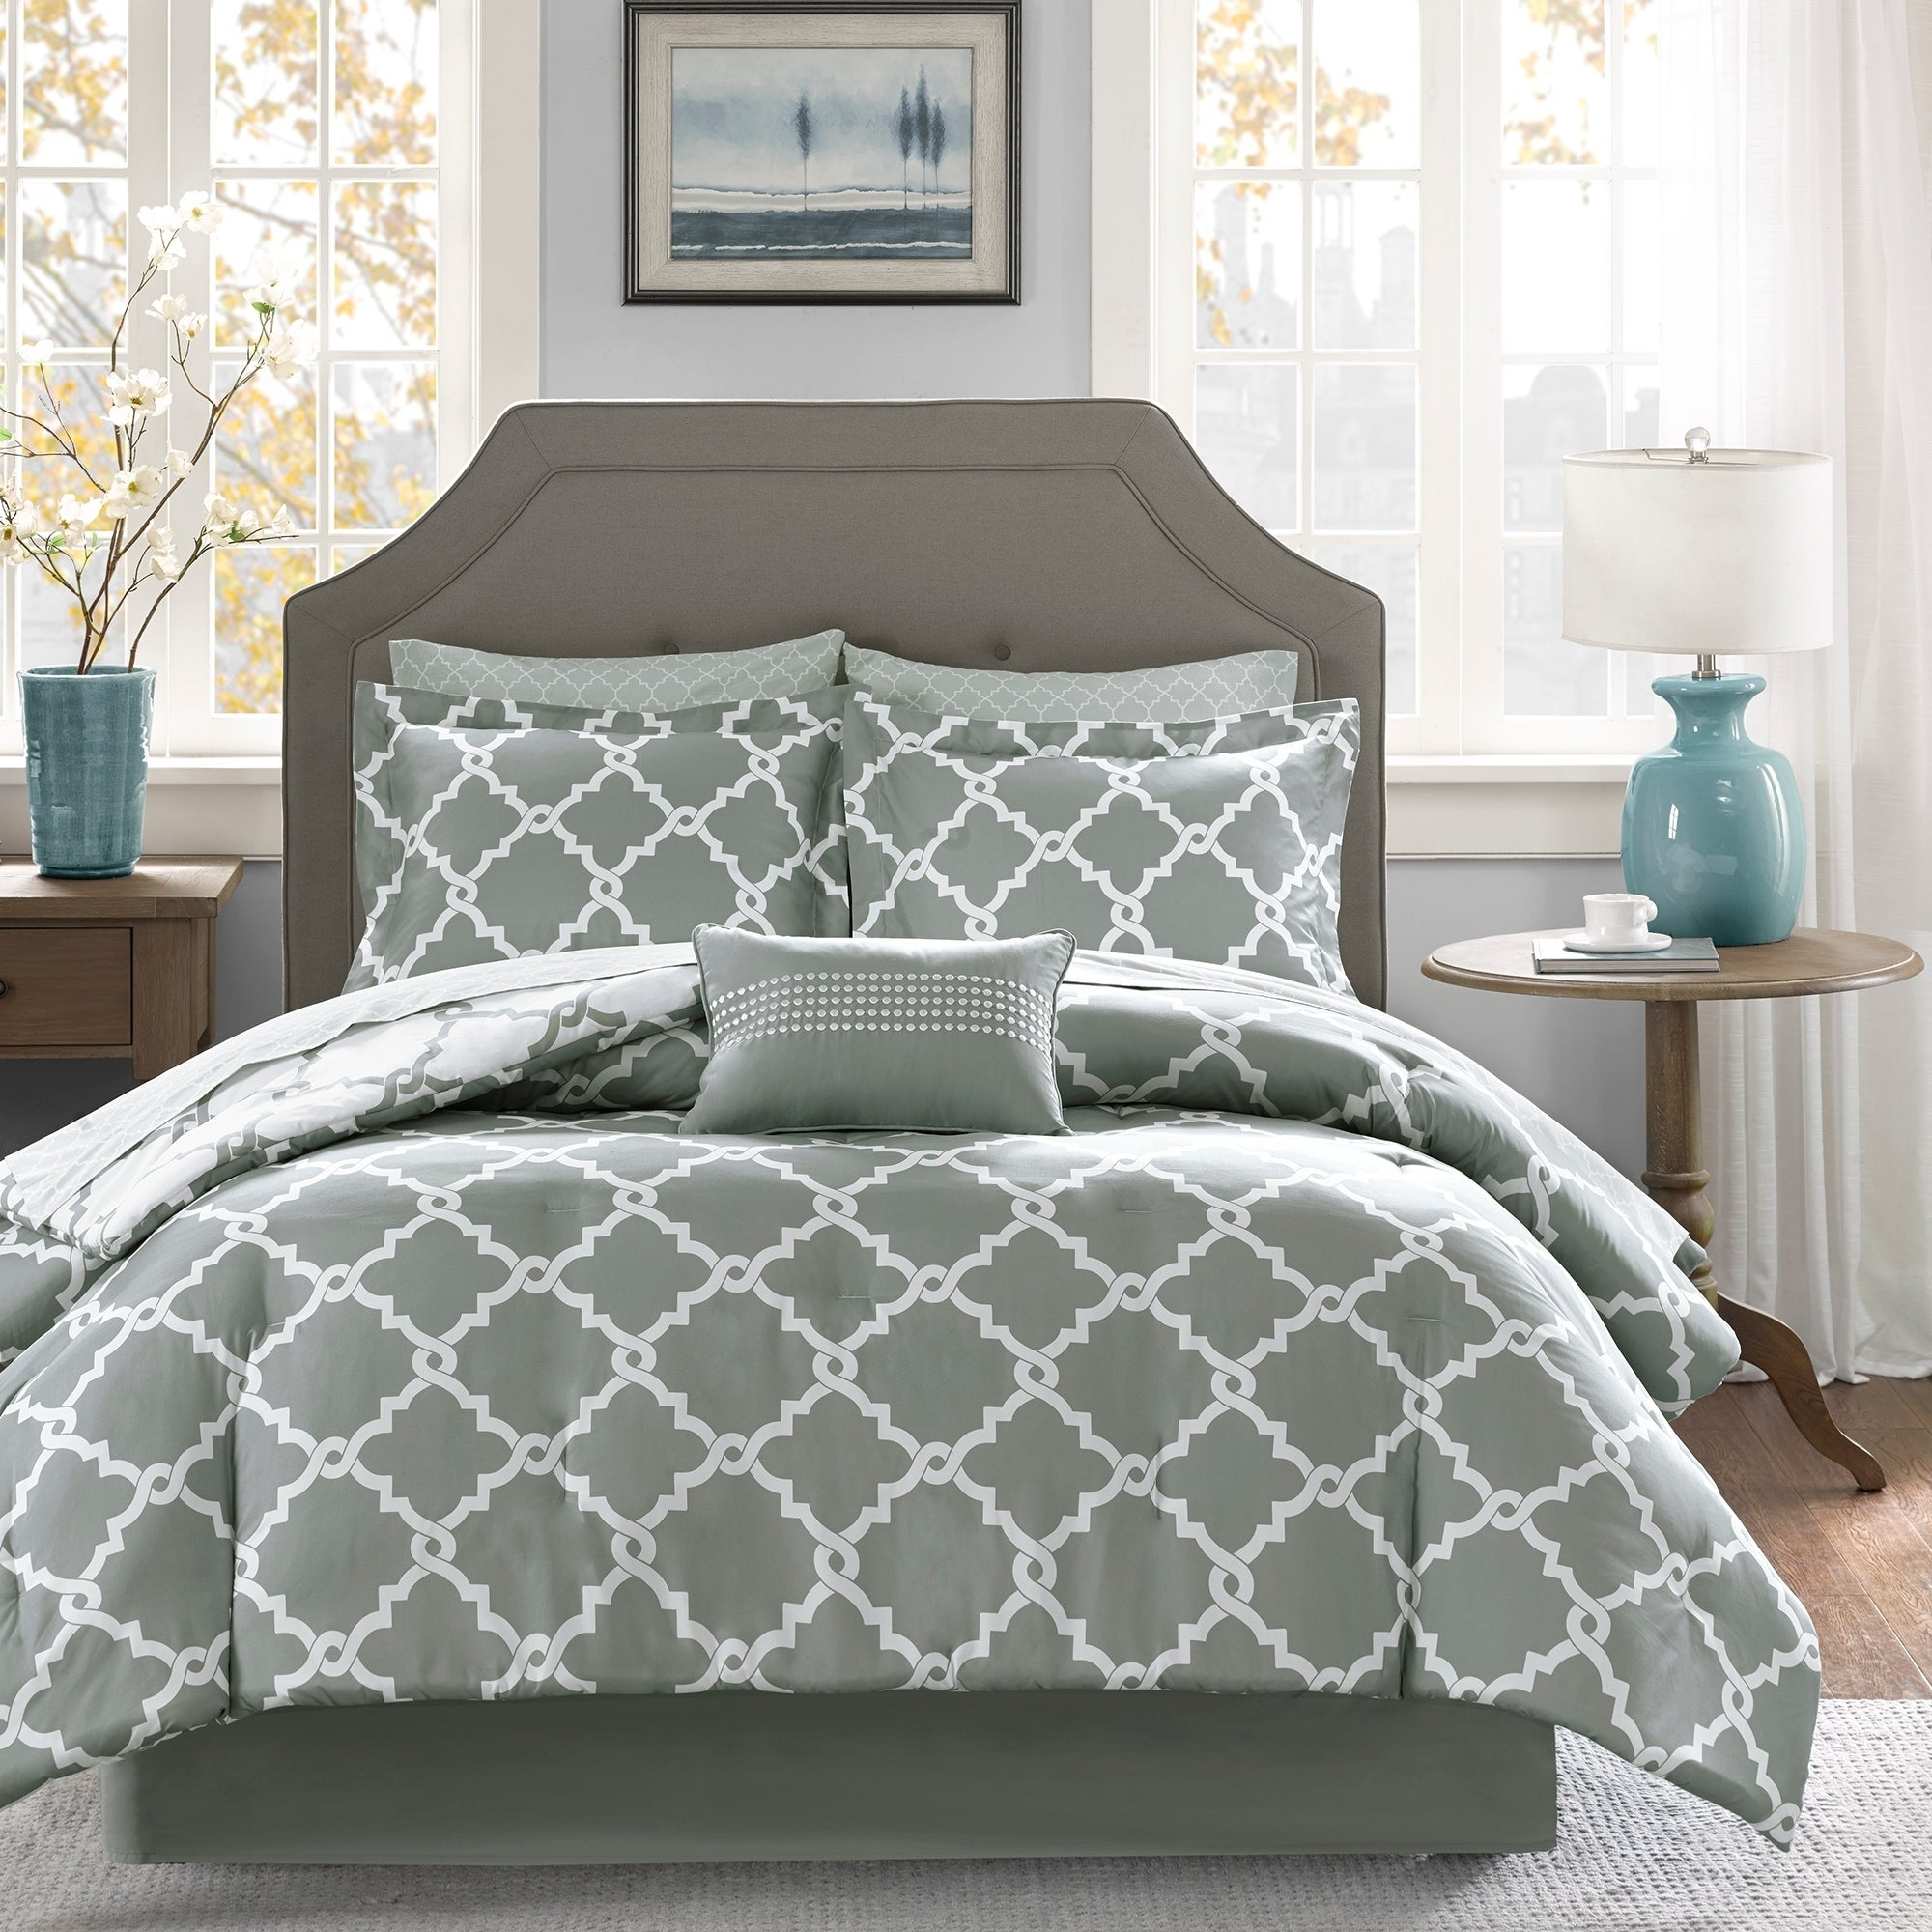 product mosaic cottage bedding bed stone shipping free comforter bath today cotton overstock com set